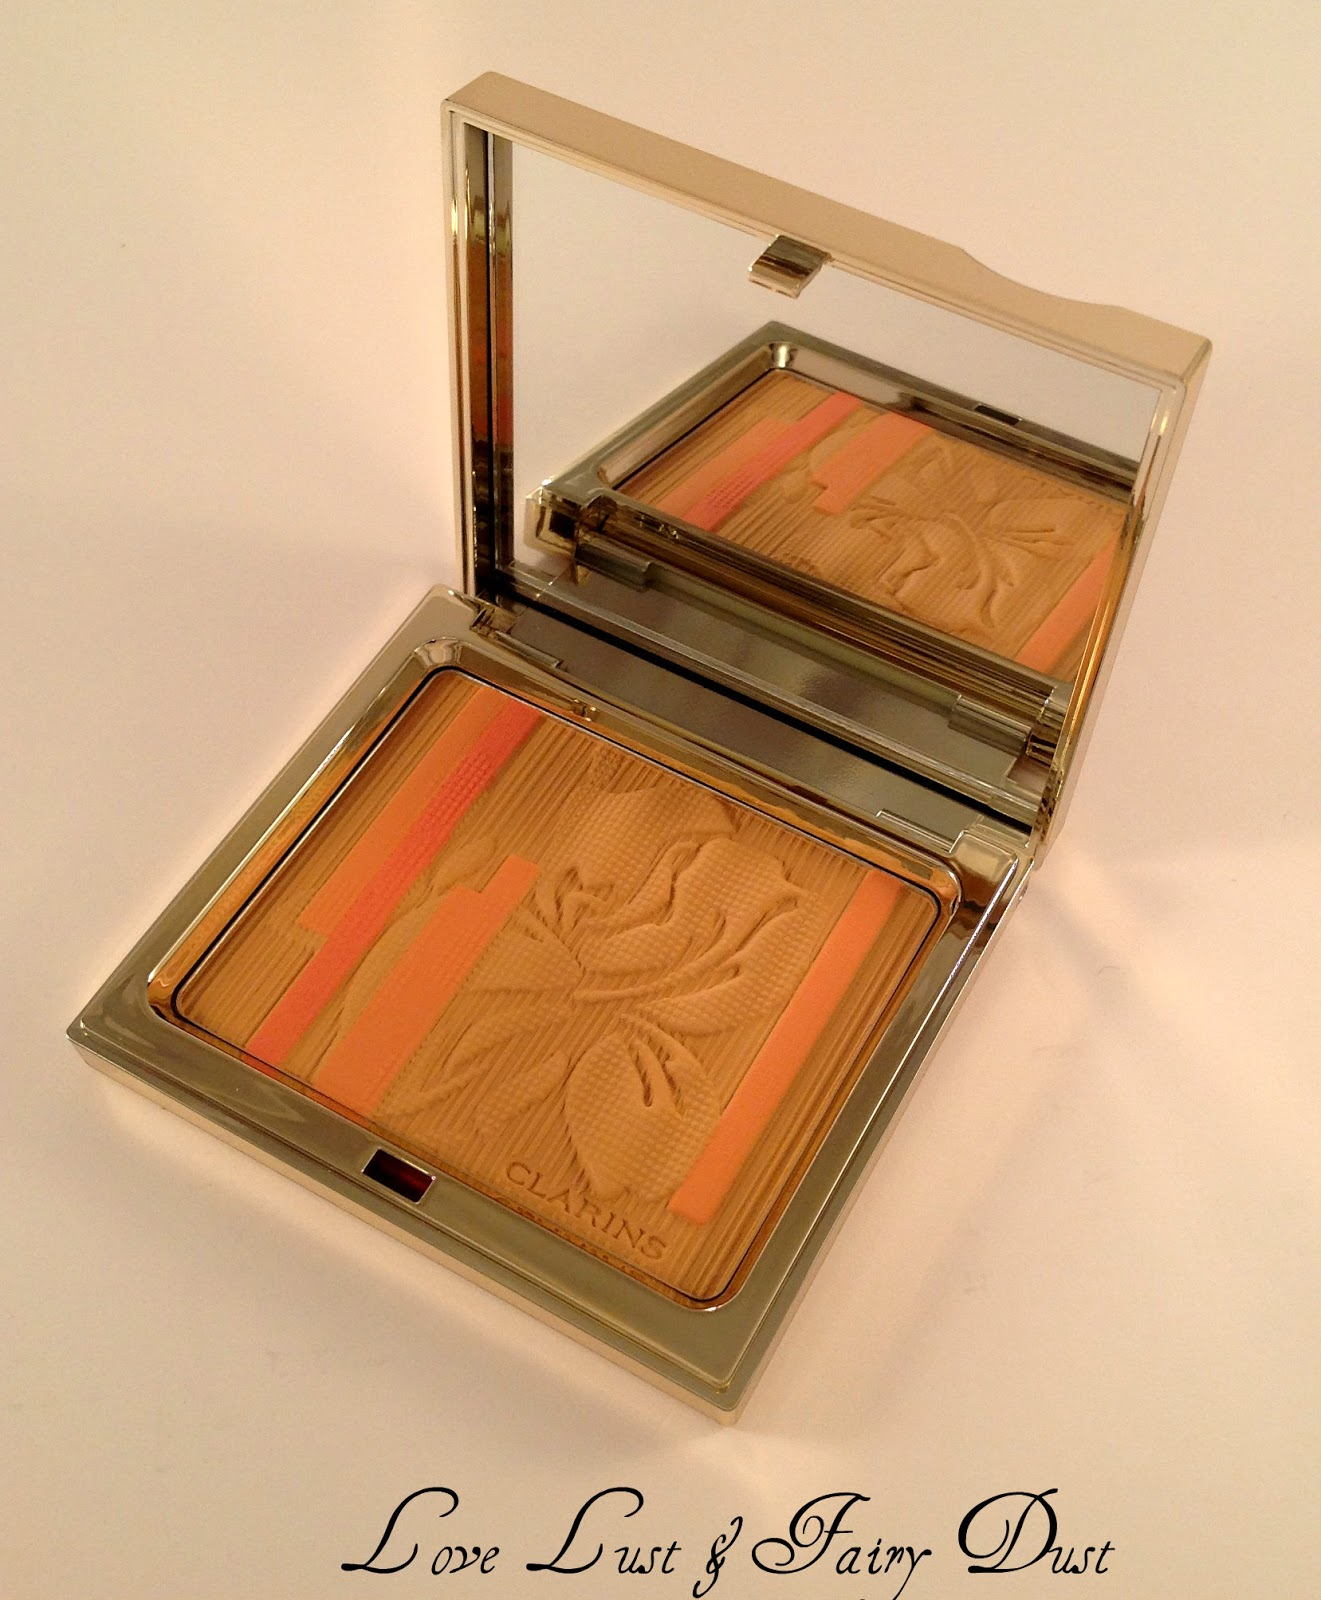 Clarins Limited Edition Face and Blush Powder